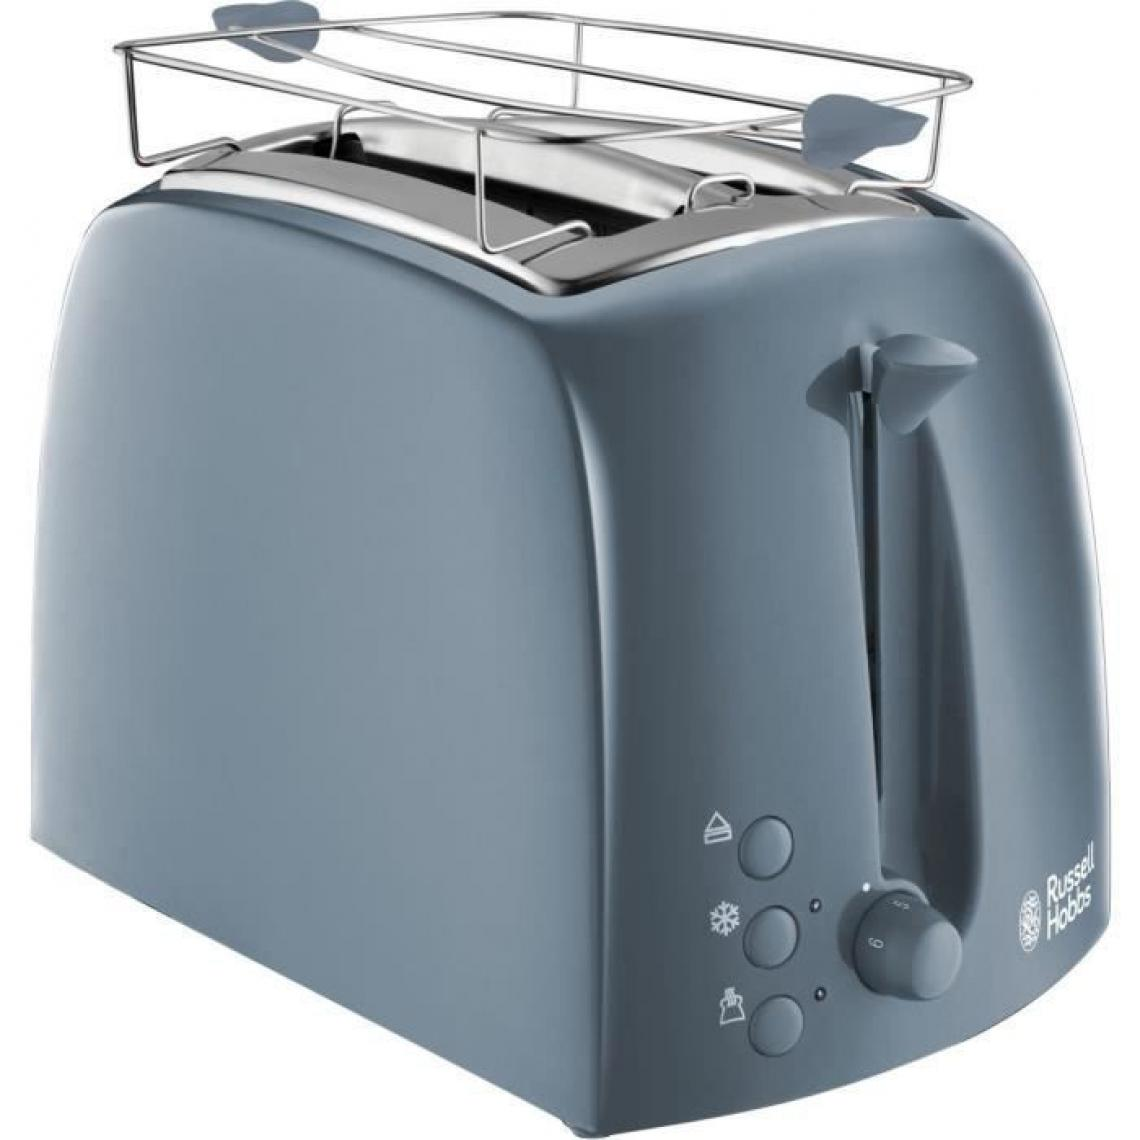 Russell Hobbs Russell Hobbs 21644-56 Toaster Grille-Pain Texture Fentes Larges - Gris